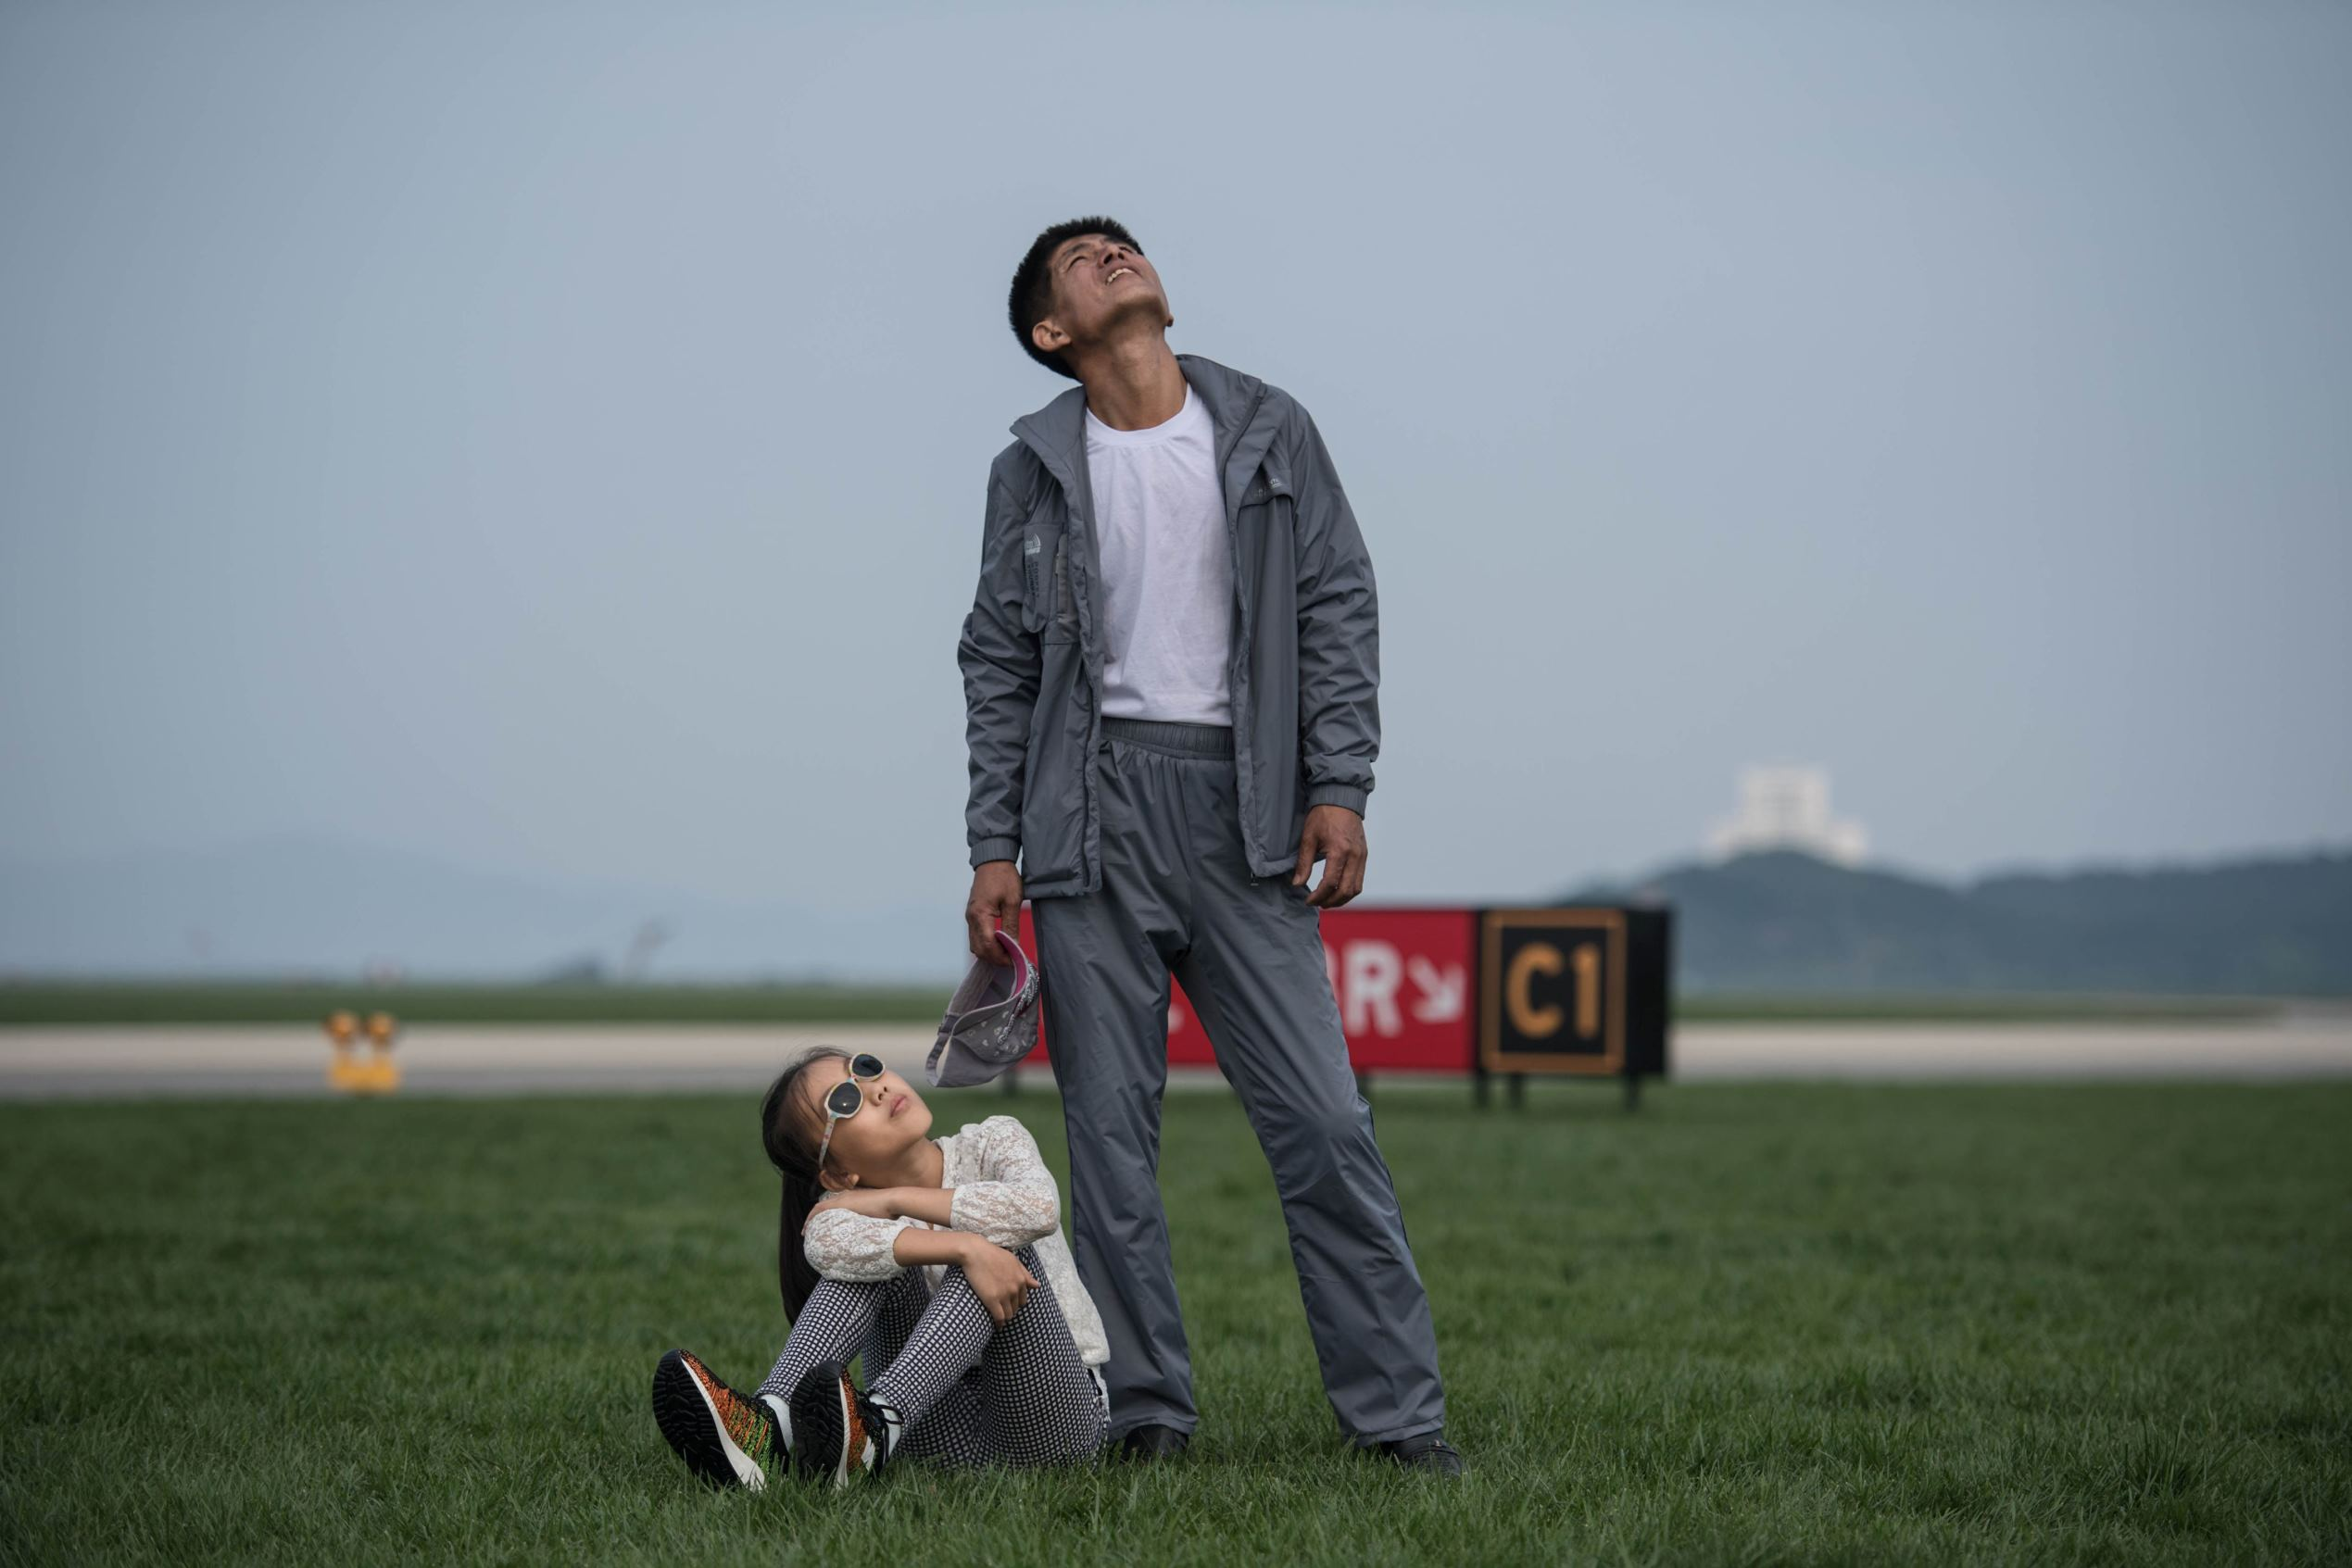 A man and child watch a aerial display during the Wonsan Friendship Air Festival in Wonsan on Sept. 25, 2016.